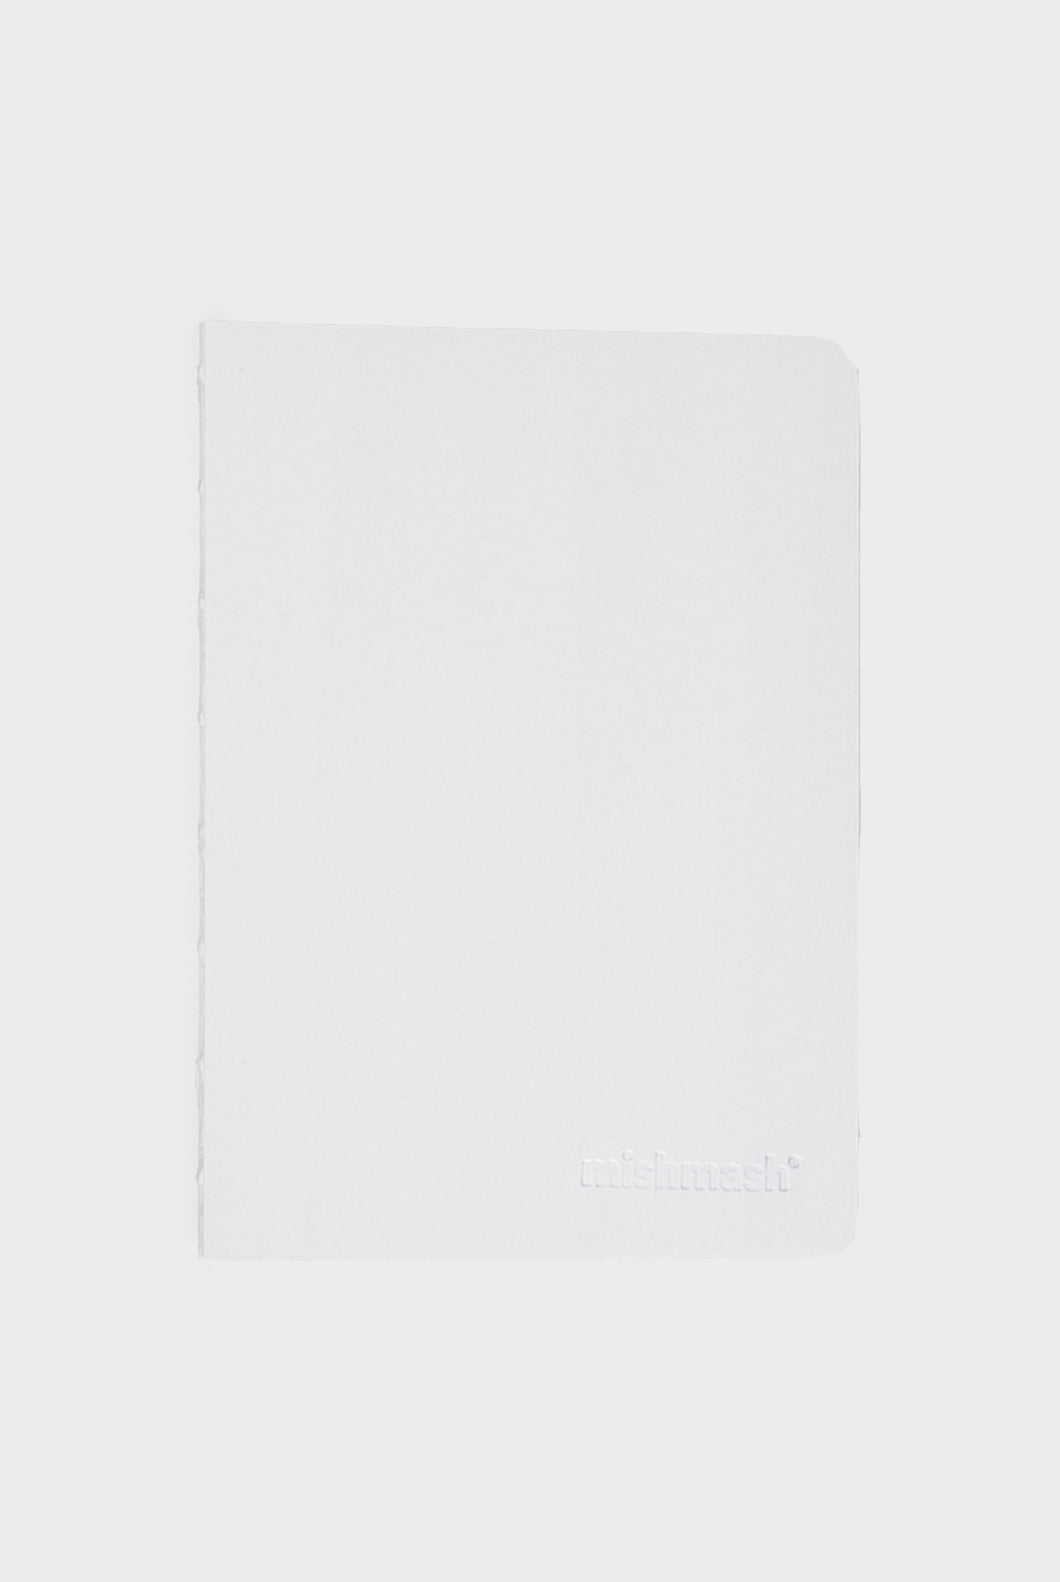 mishmash - Naked Notebook - Plain - B5 - White